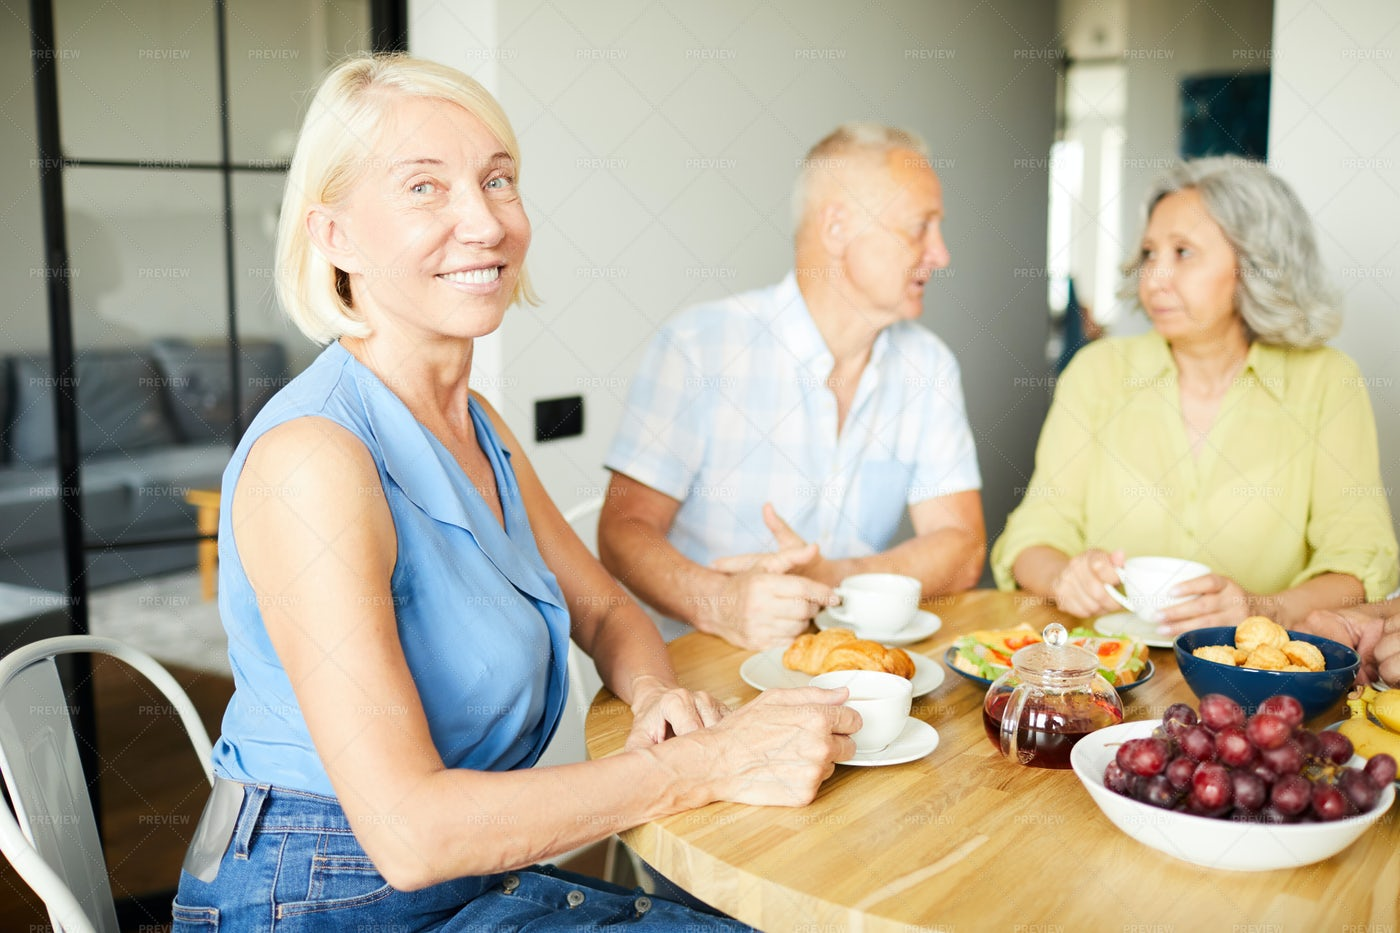 Smiling Adult Woman At Lunch: Stock Photos